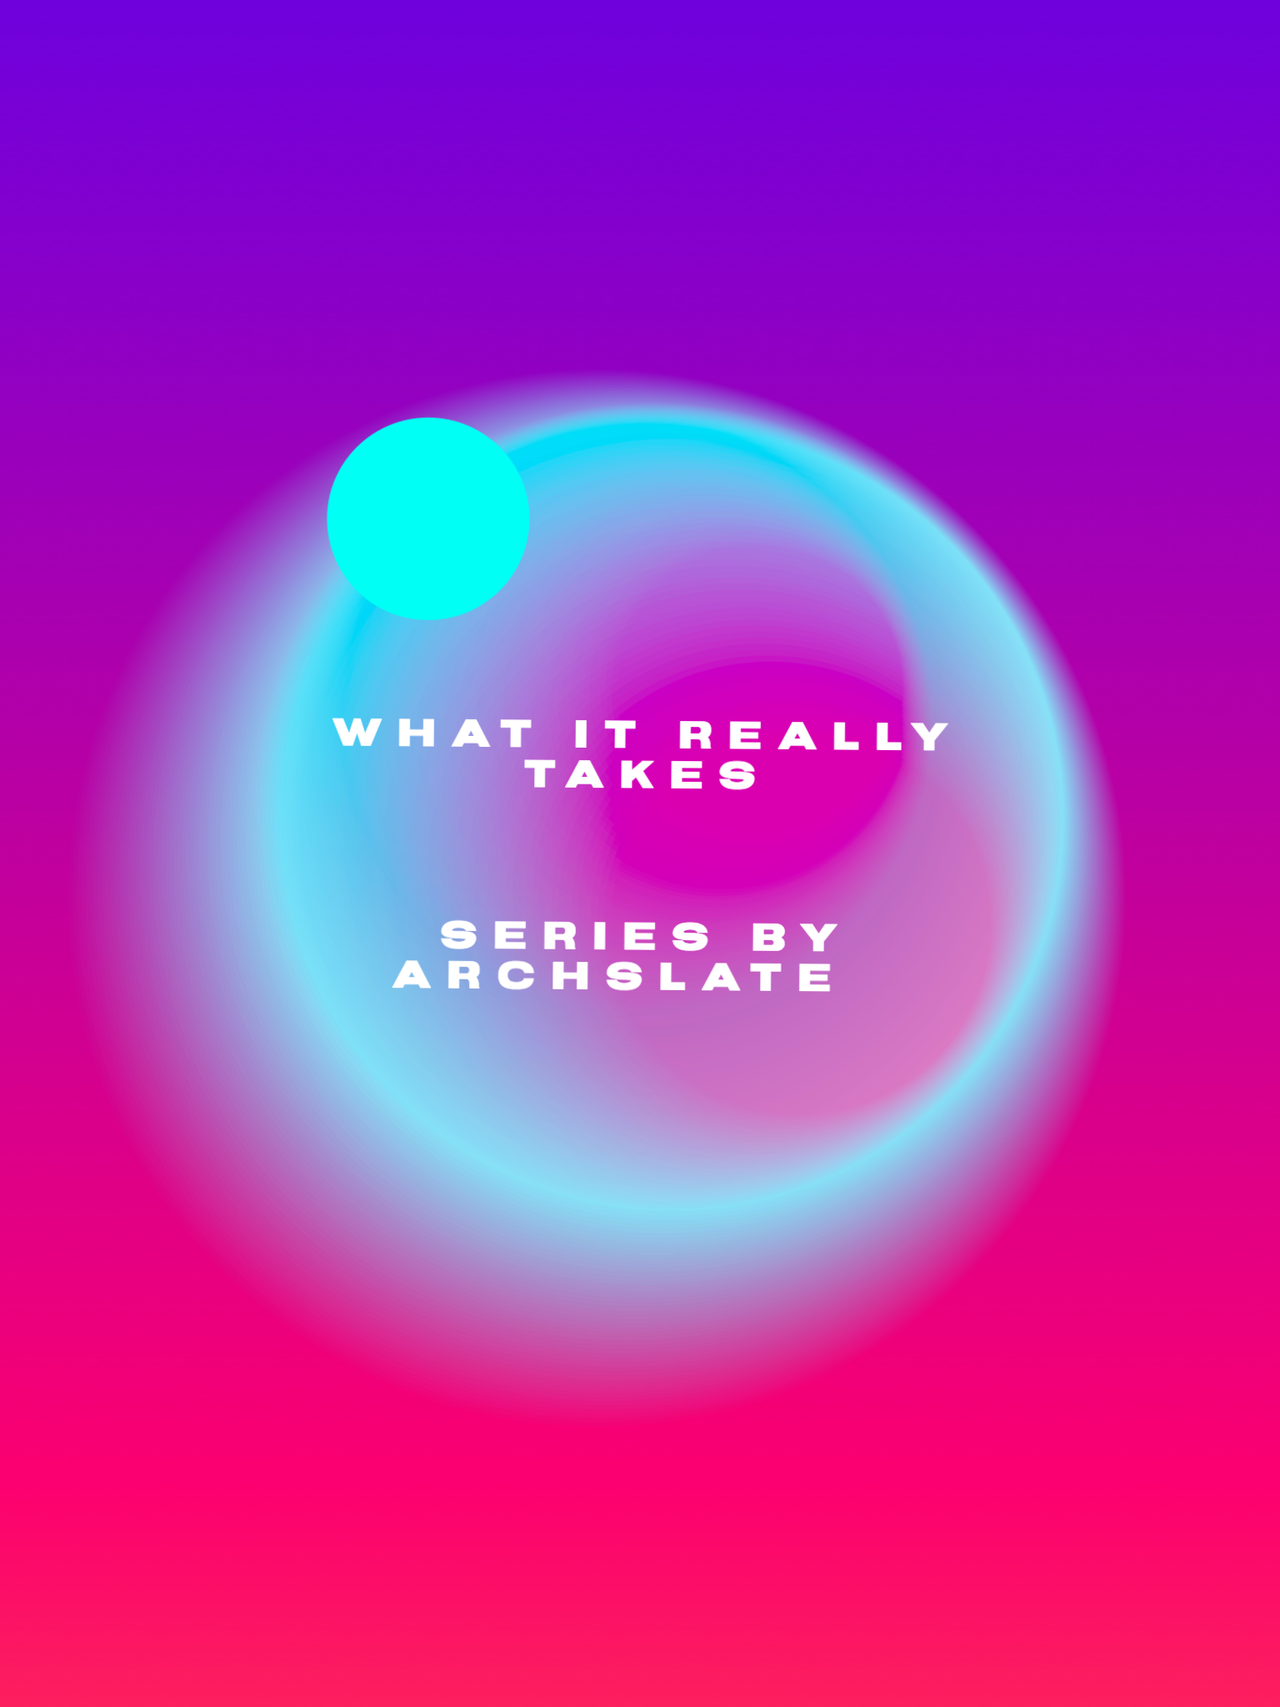 archslate architecture firms.png